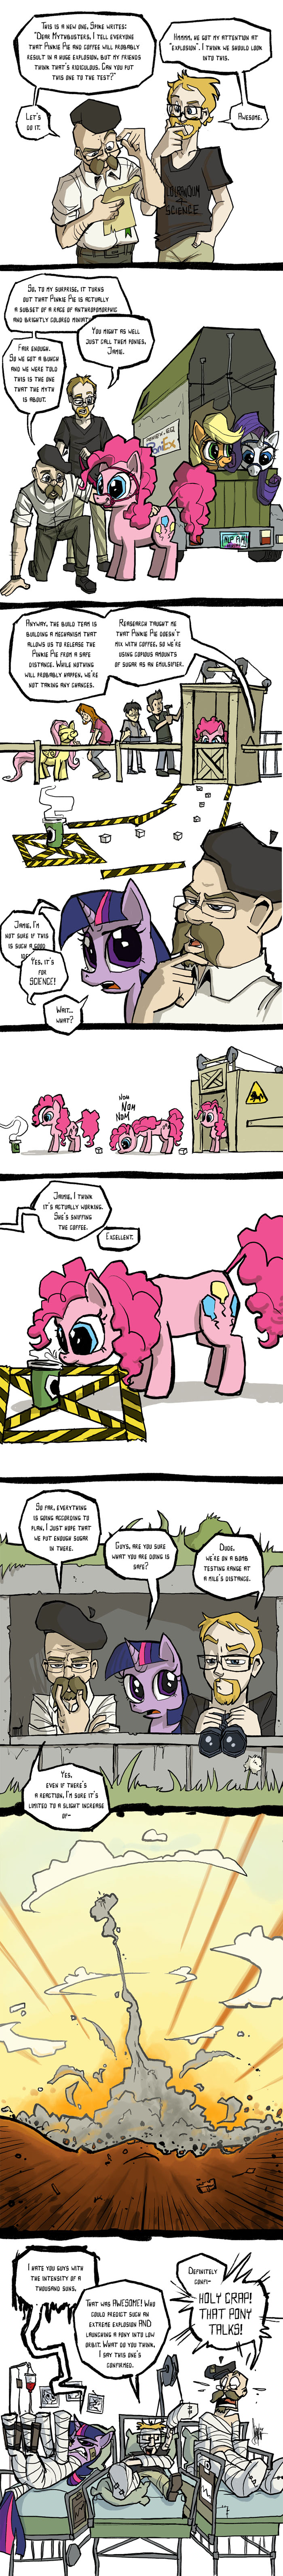 Today on Mythbusters: ponies by TheArtrix